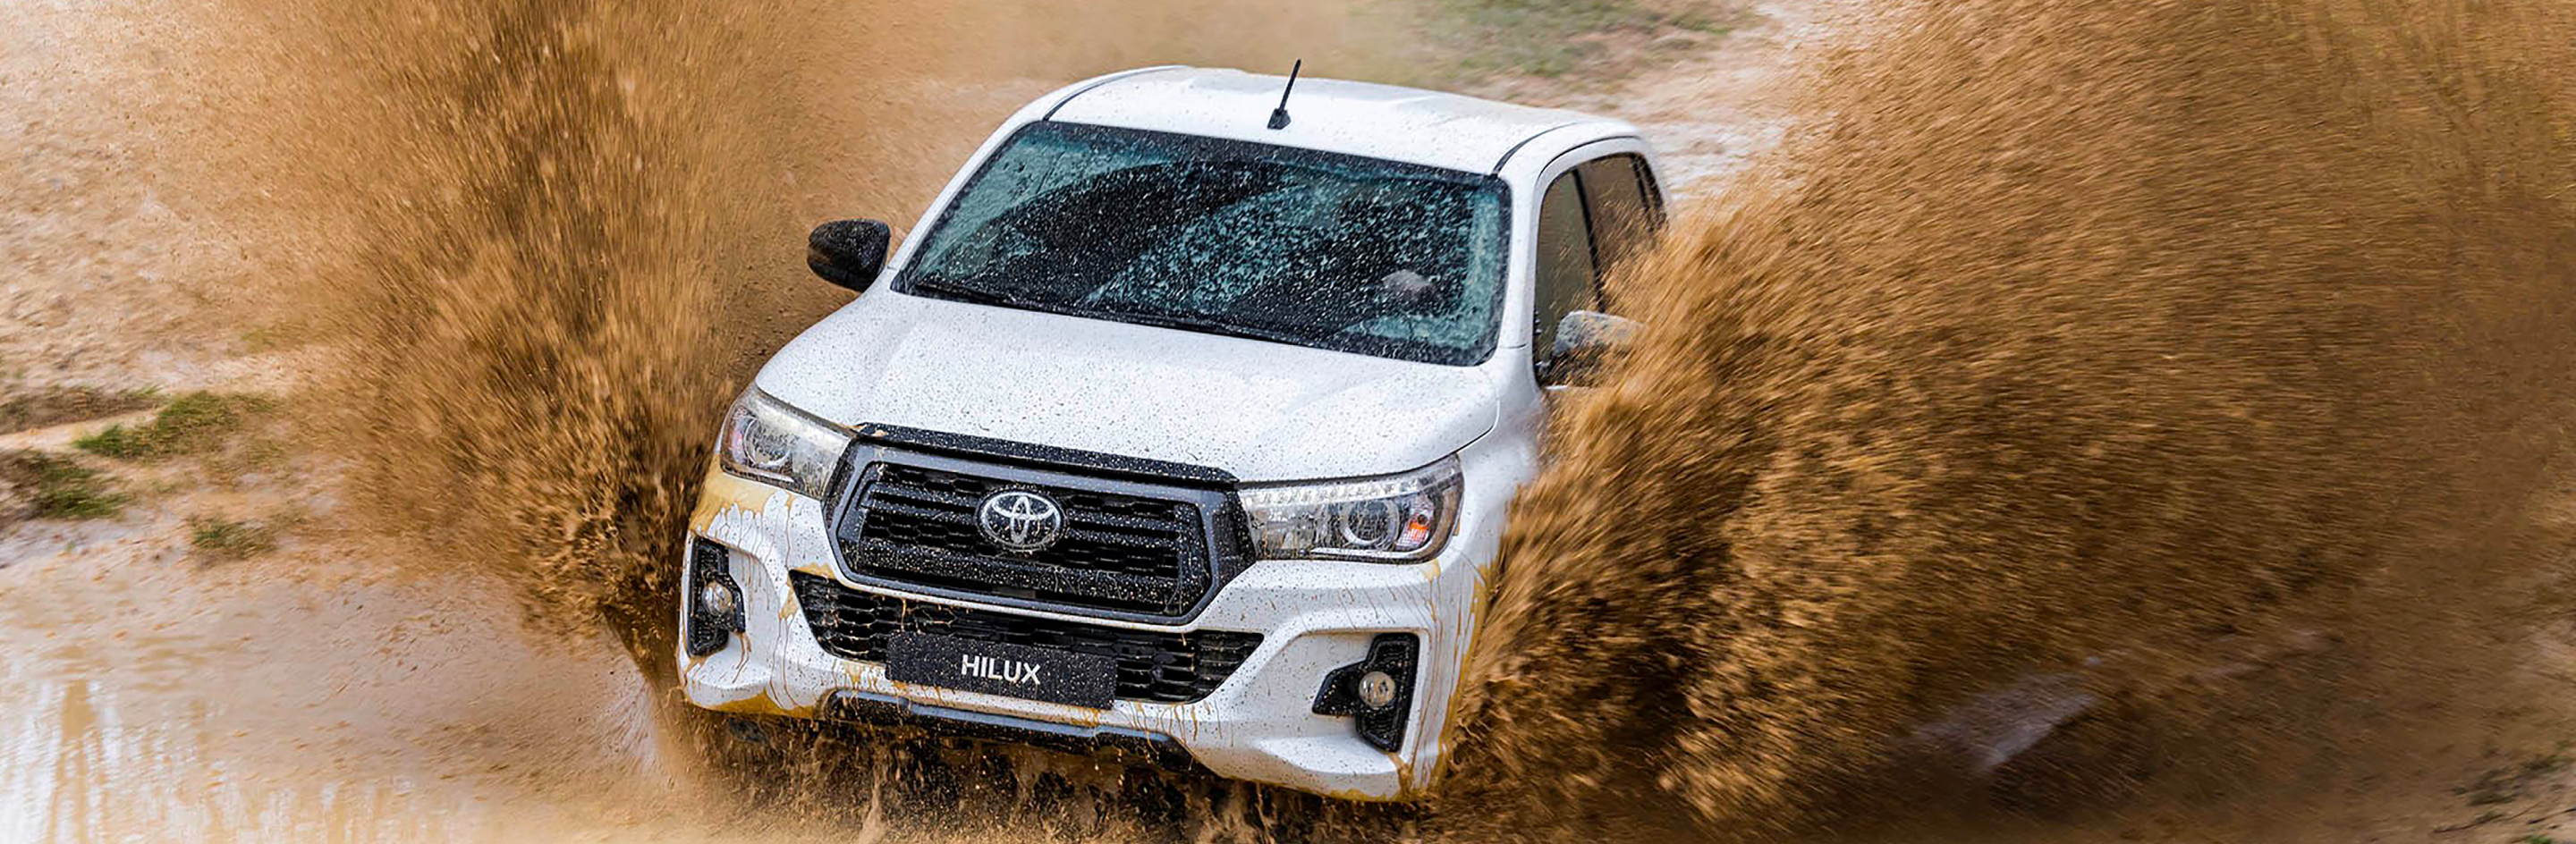 Banner Toyota Hilux Extra Cabina 2020